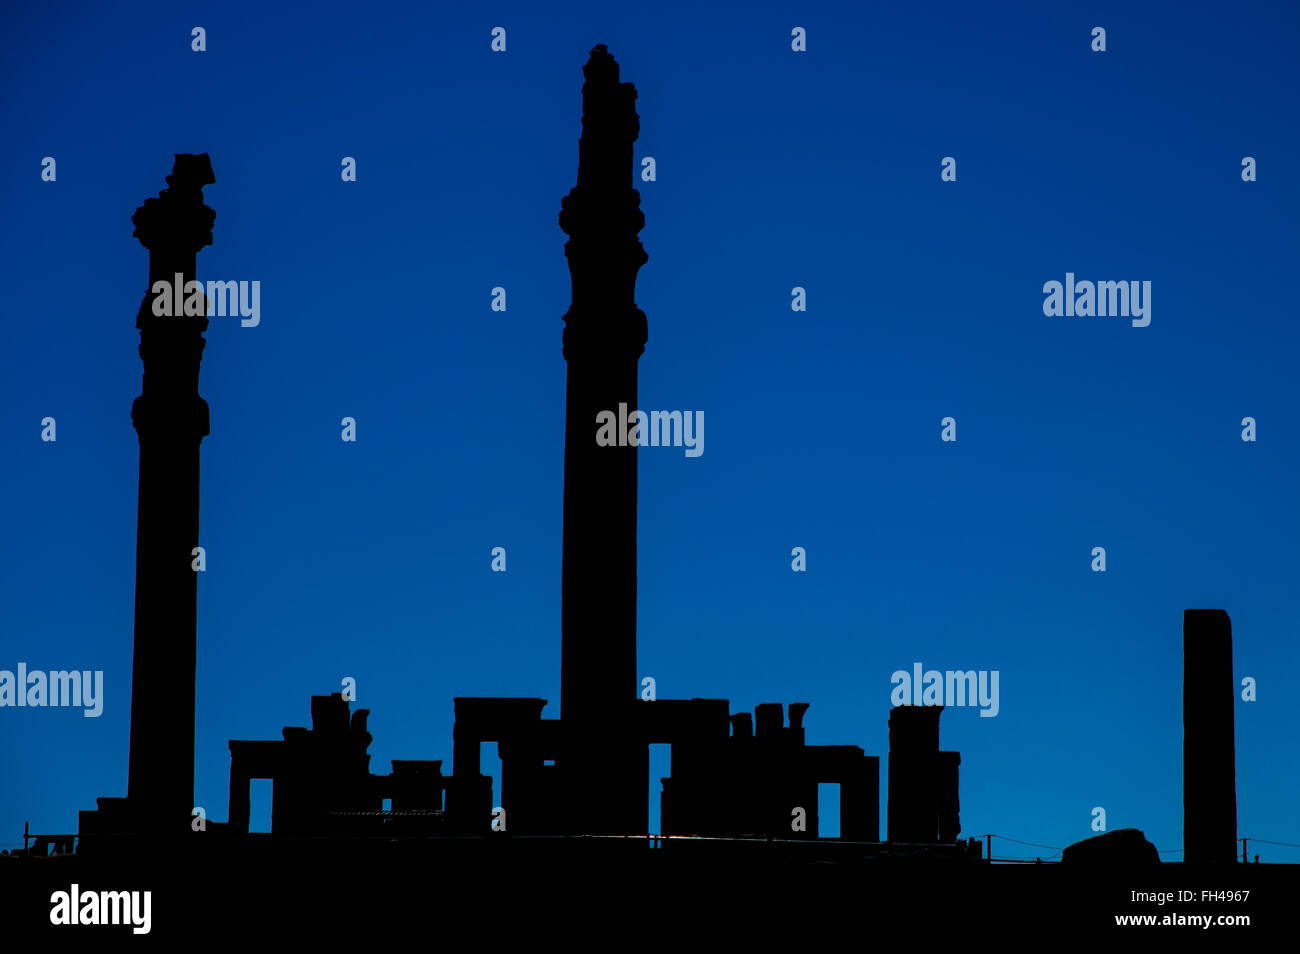 Ancient ruins of Persepolis, the most important city of old Persia. Iran, 2016 - Stock Image